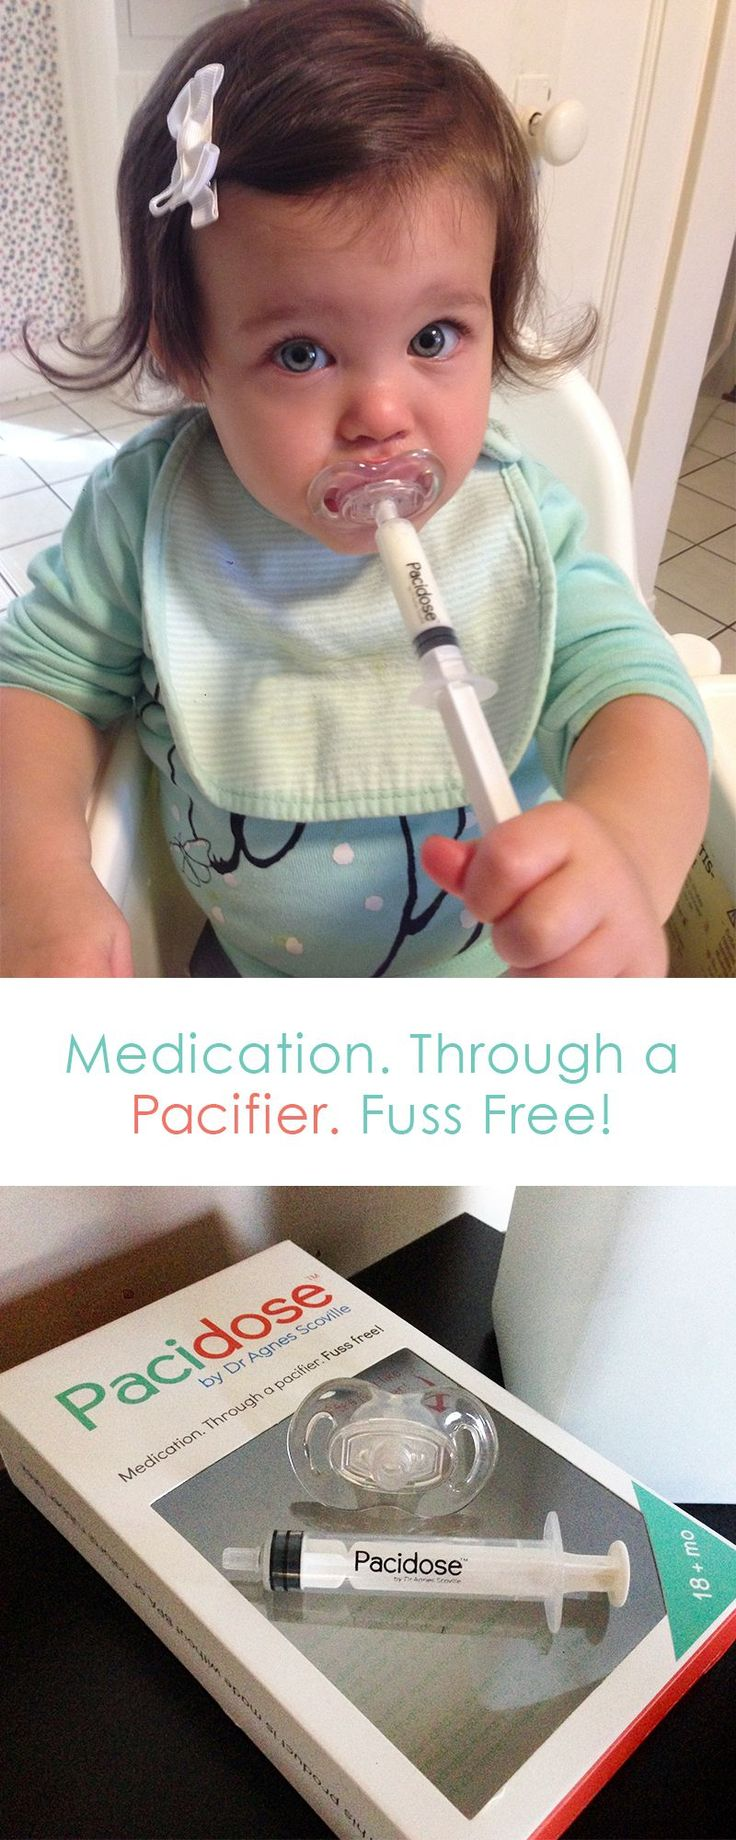 Pacidose looks and feels just like a pacifier and prevents wasted medicine, all while keeping your baby healthy.